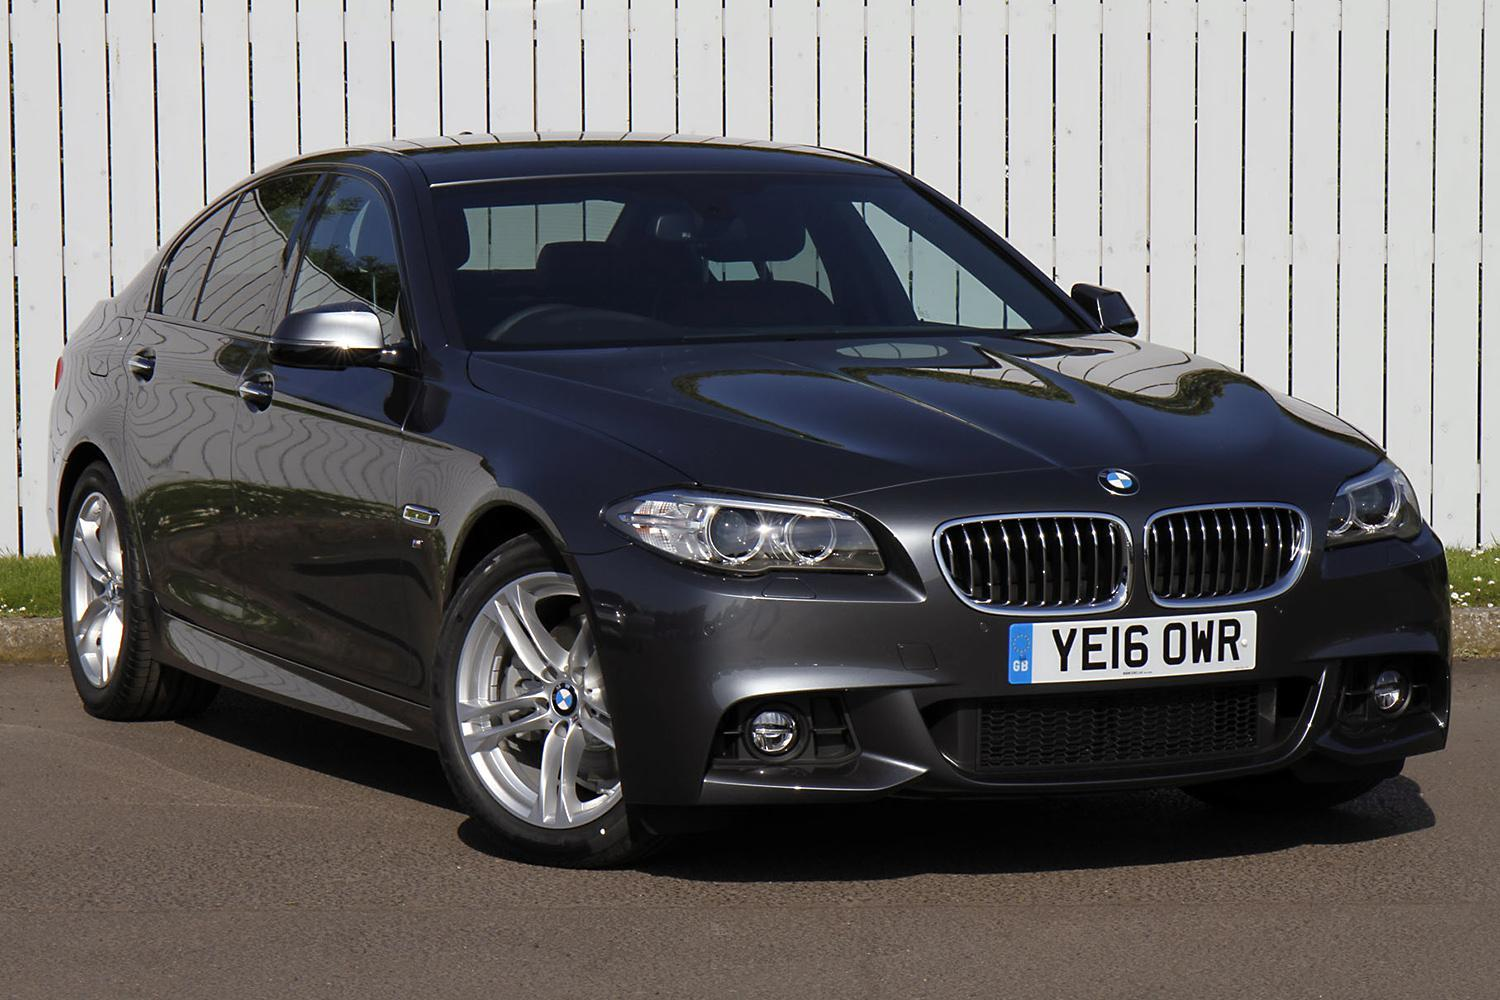 BMW 5 Series Saloon YE16OWR - Image 4